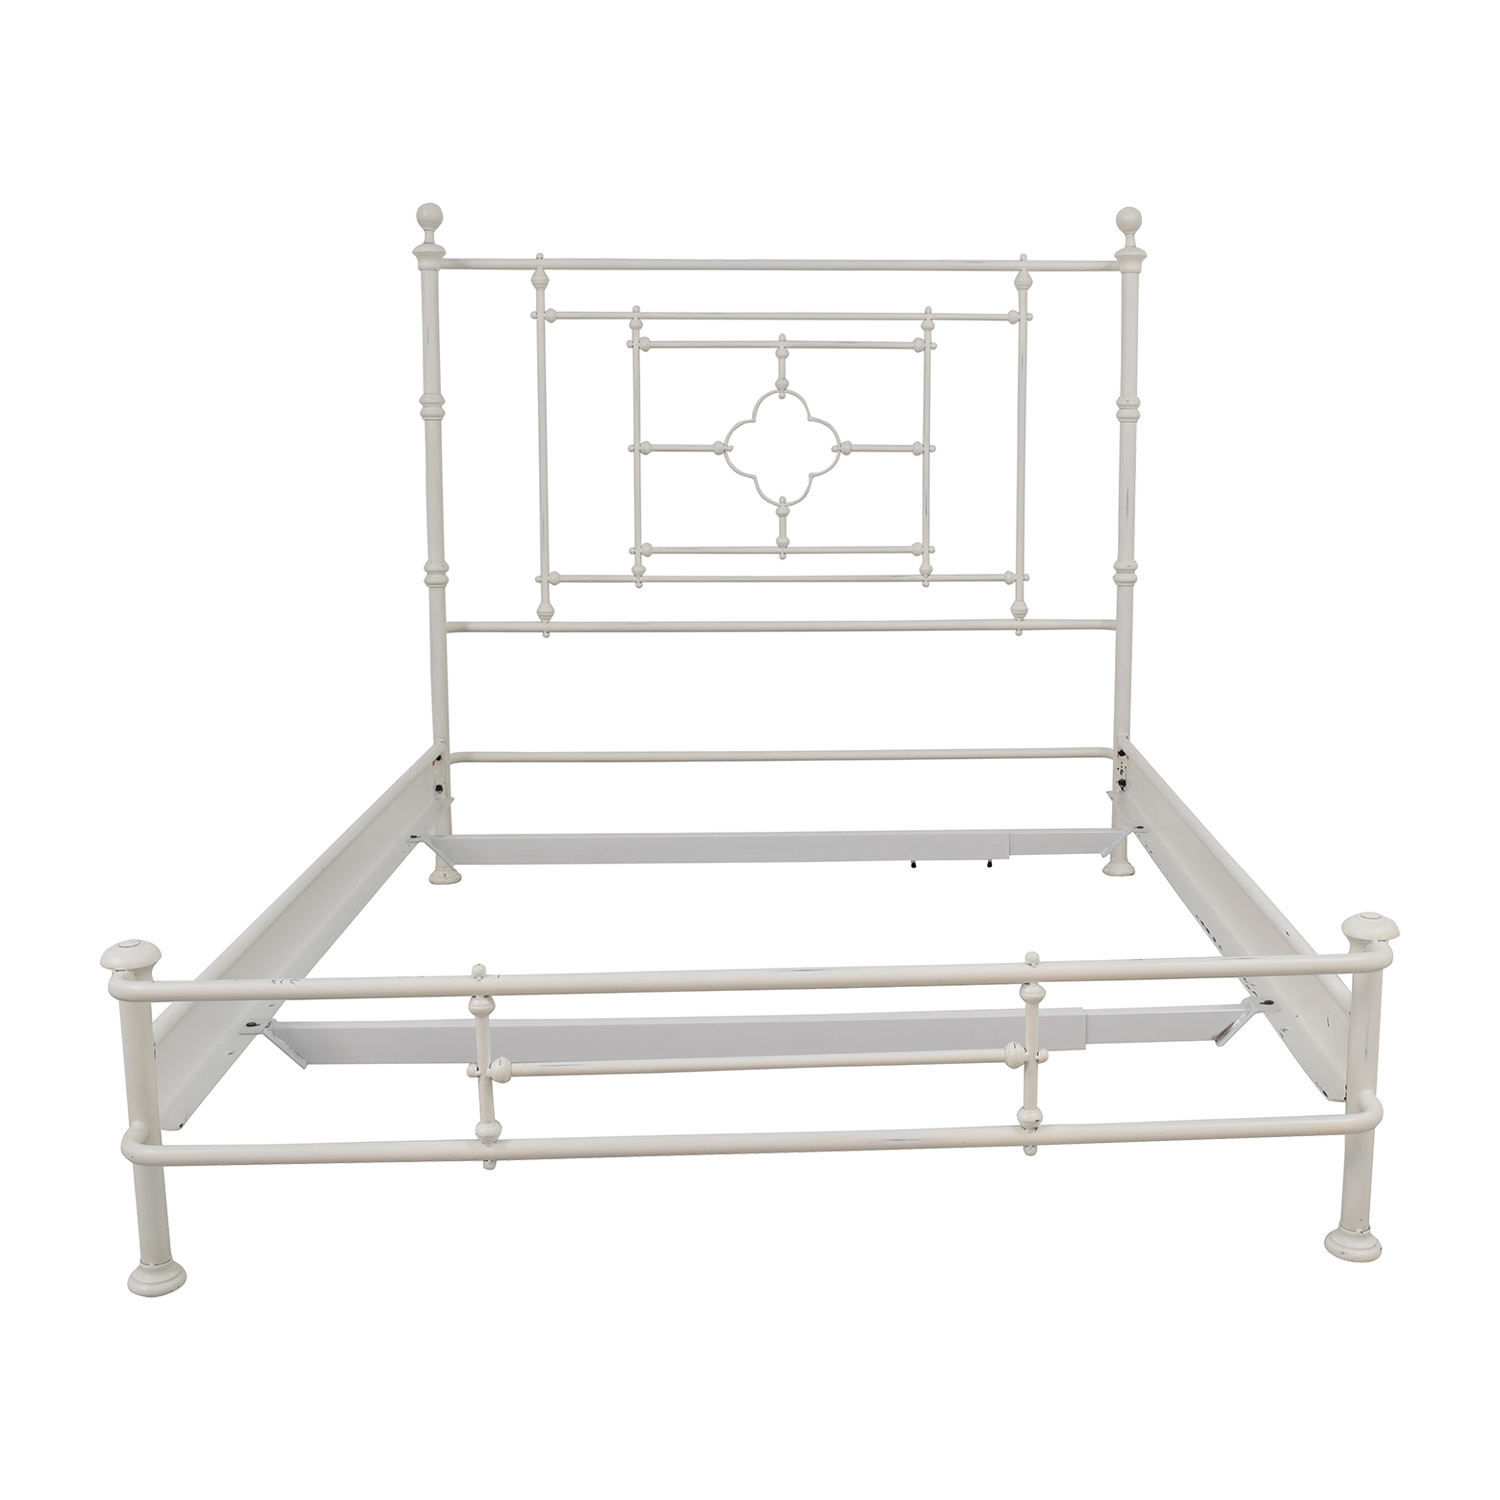 Restoration Hardware Restoration Hardware White Metal Queen Bed Frame on sale